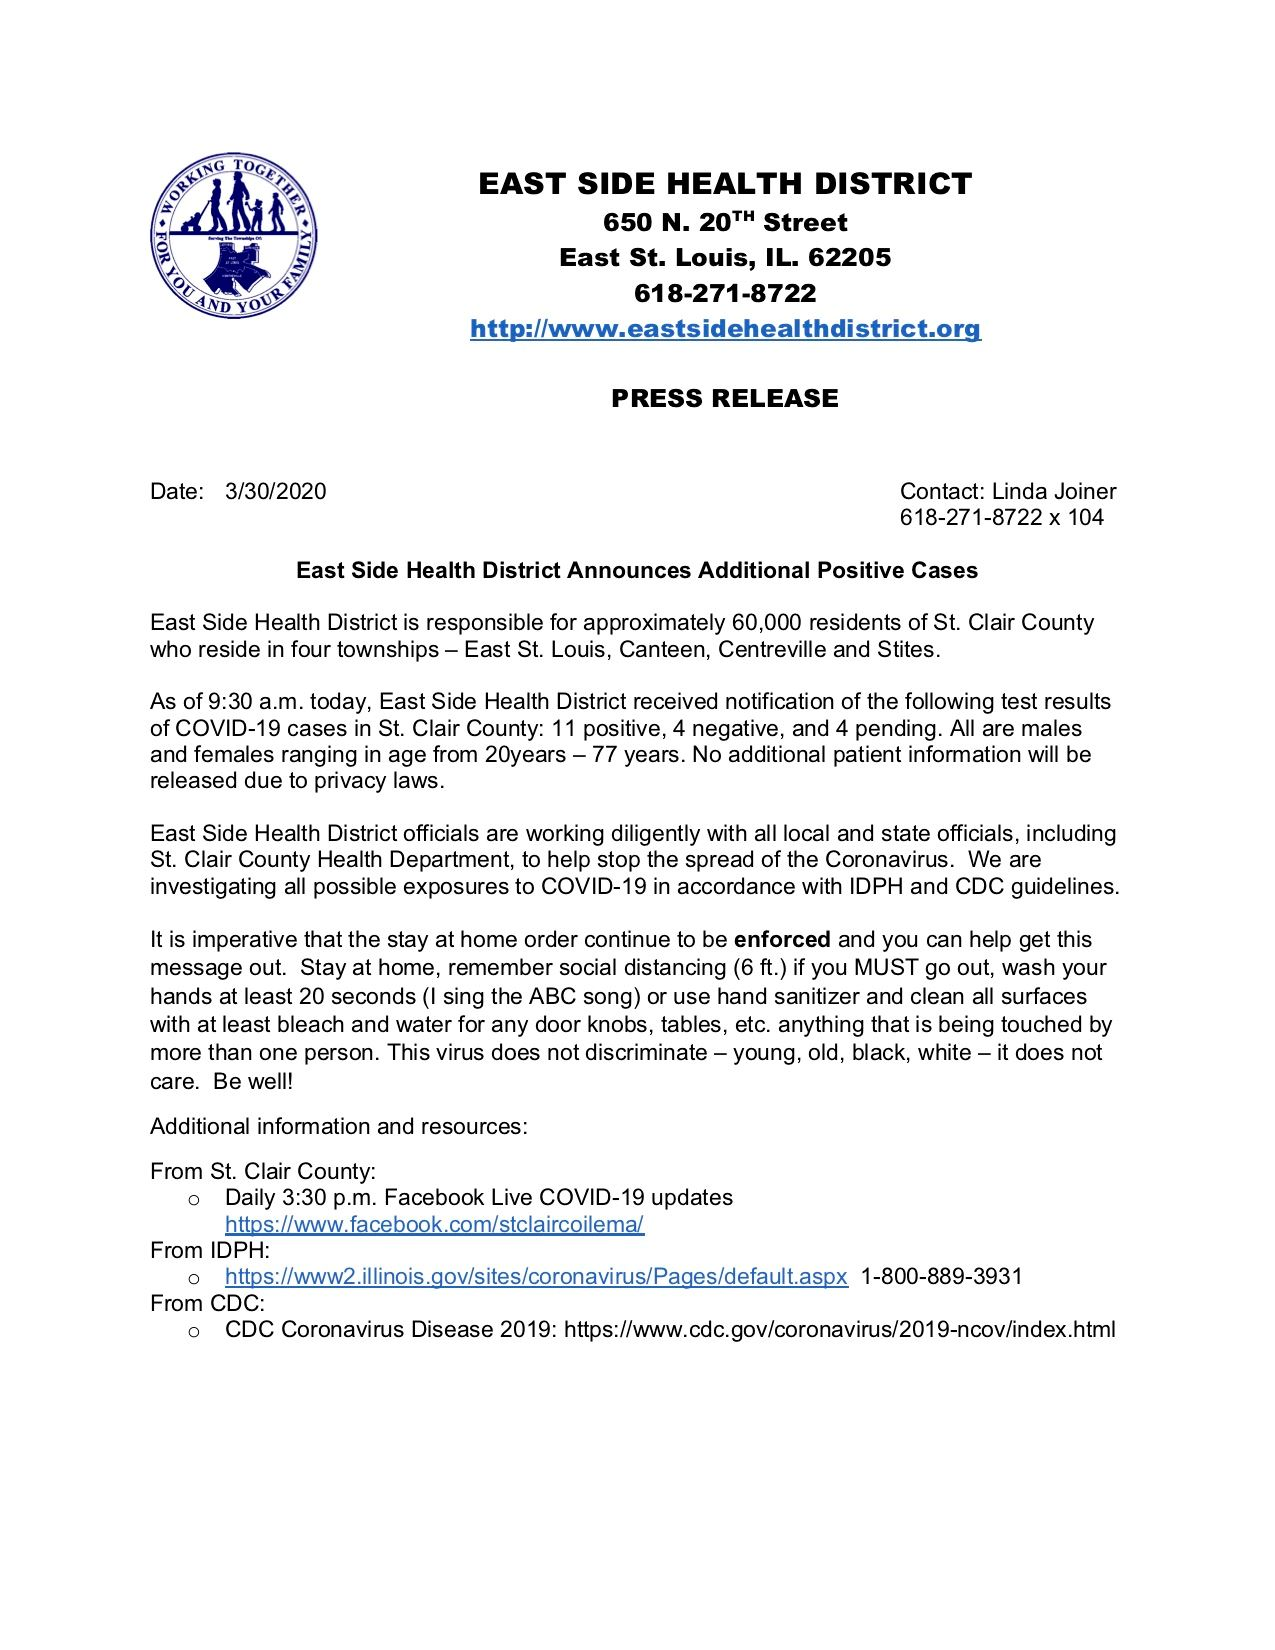 East Side  Health District Press Release 03-30-20